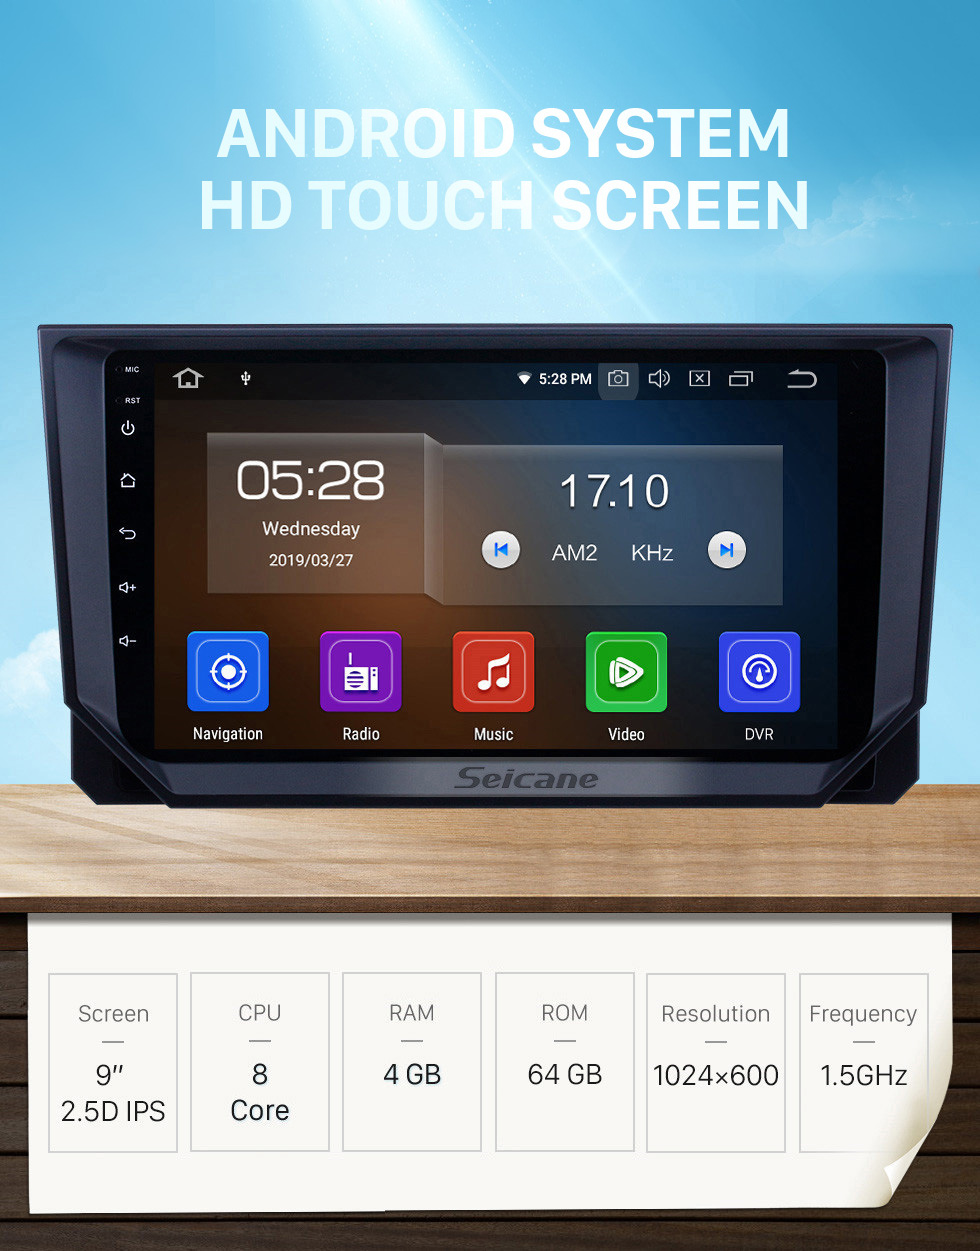 Seicane HD Touchscreen 2018 Seat Ibiza Android 10.0 9 inch GPS Navigation Radio Bluetooth USB WIFI Carplay support DAB+ TPMS OBD2